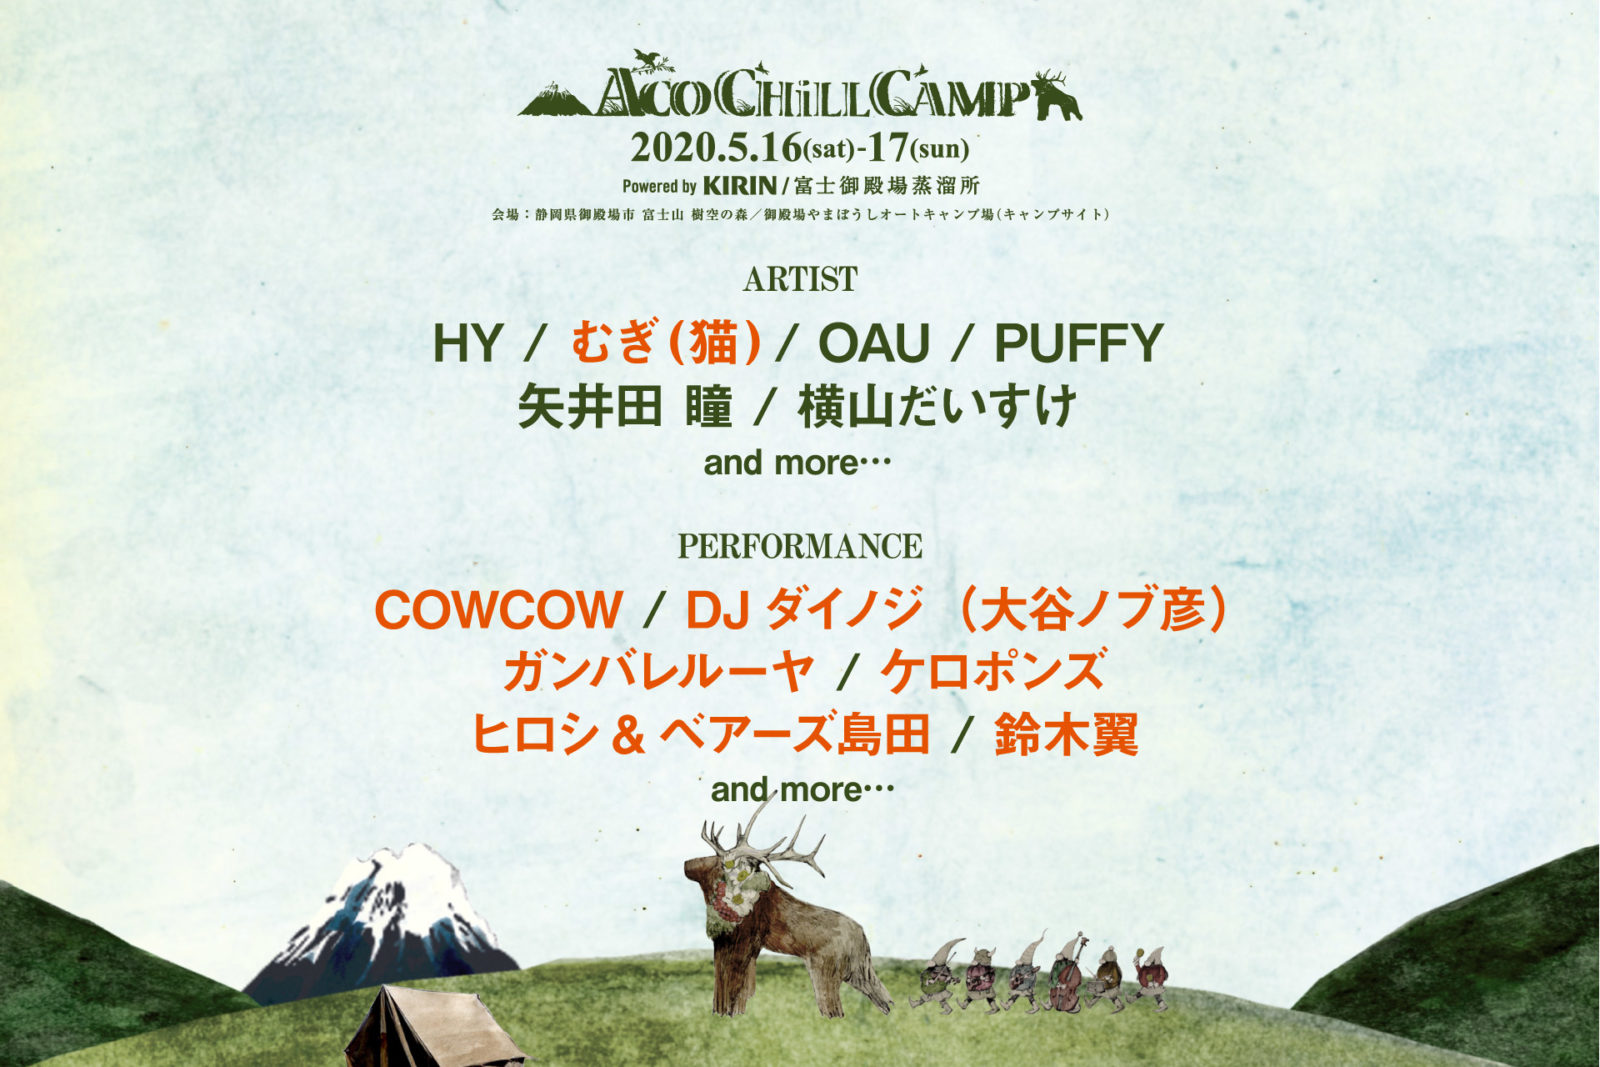 ACO CHiLL CAMP 2020、第2弾出演者発表サムネイル画像